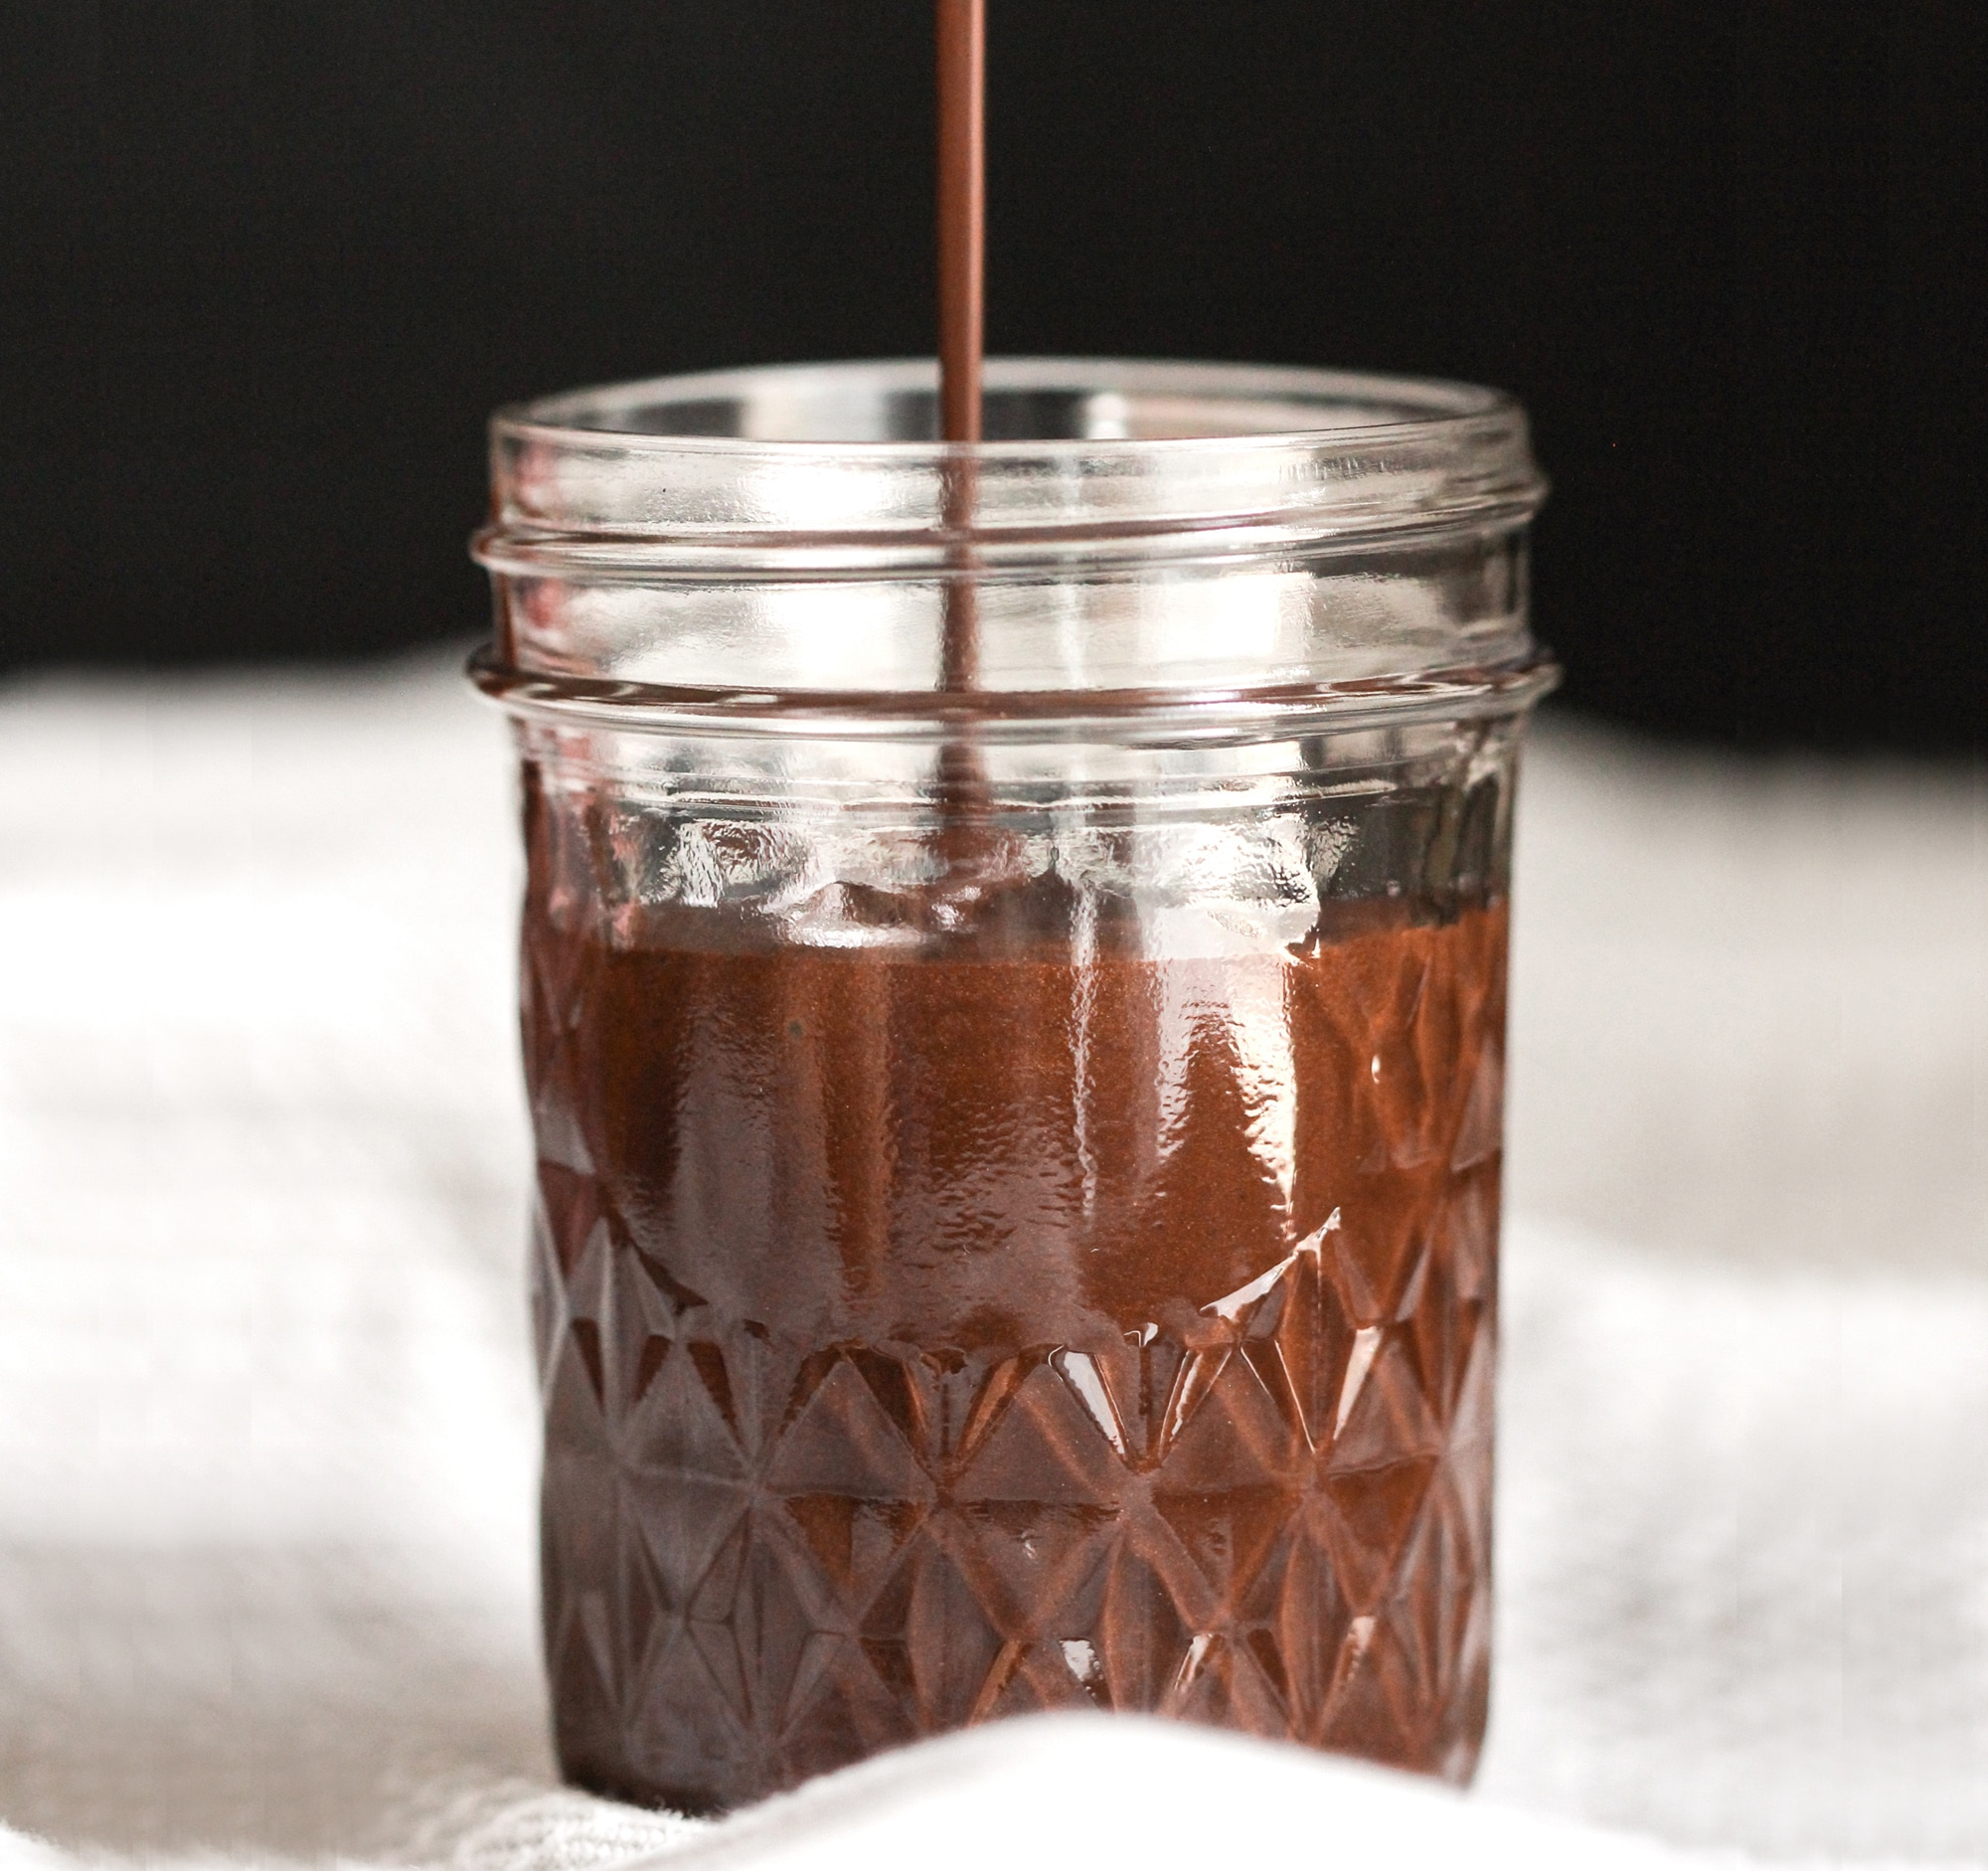 Healthy Homemade Chocolate Syrup recipe (sugar free, low fat, vegan)